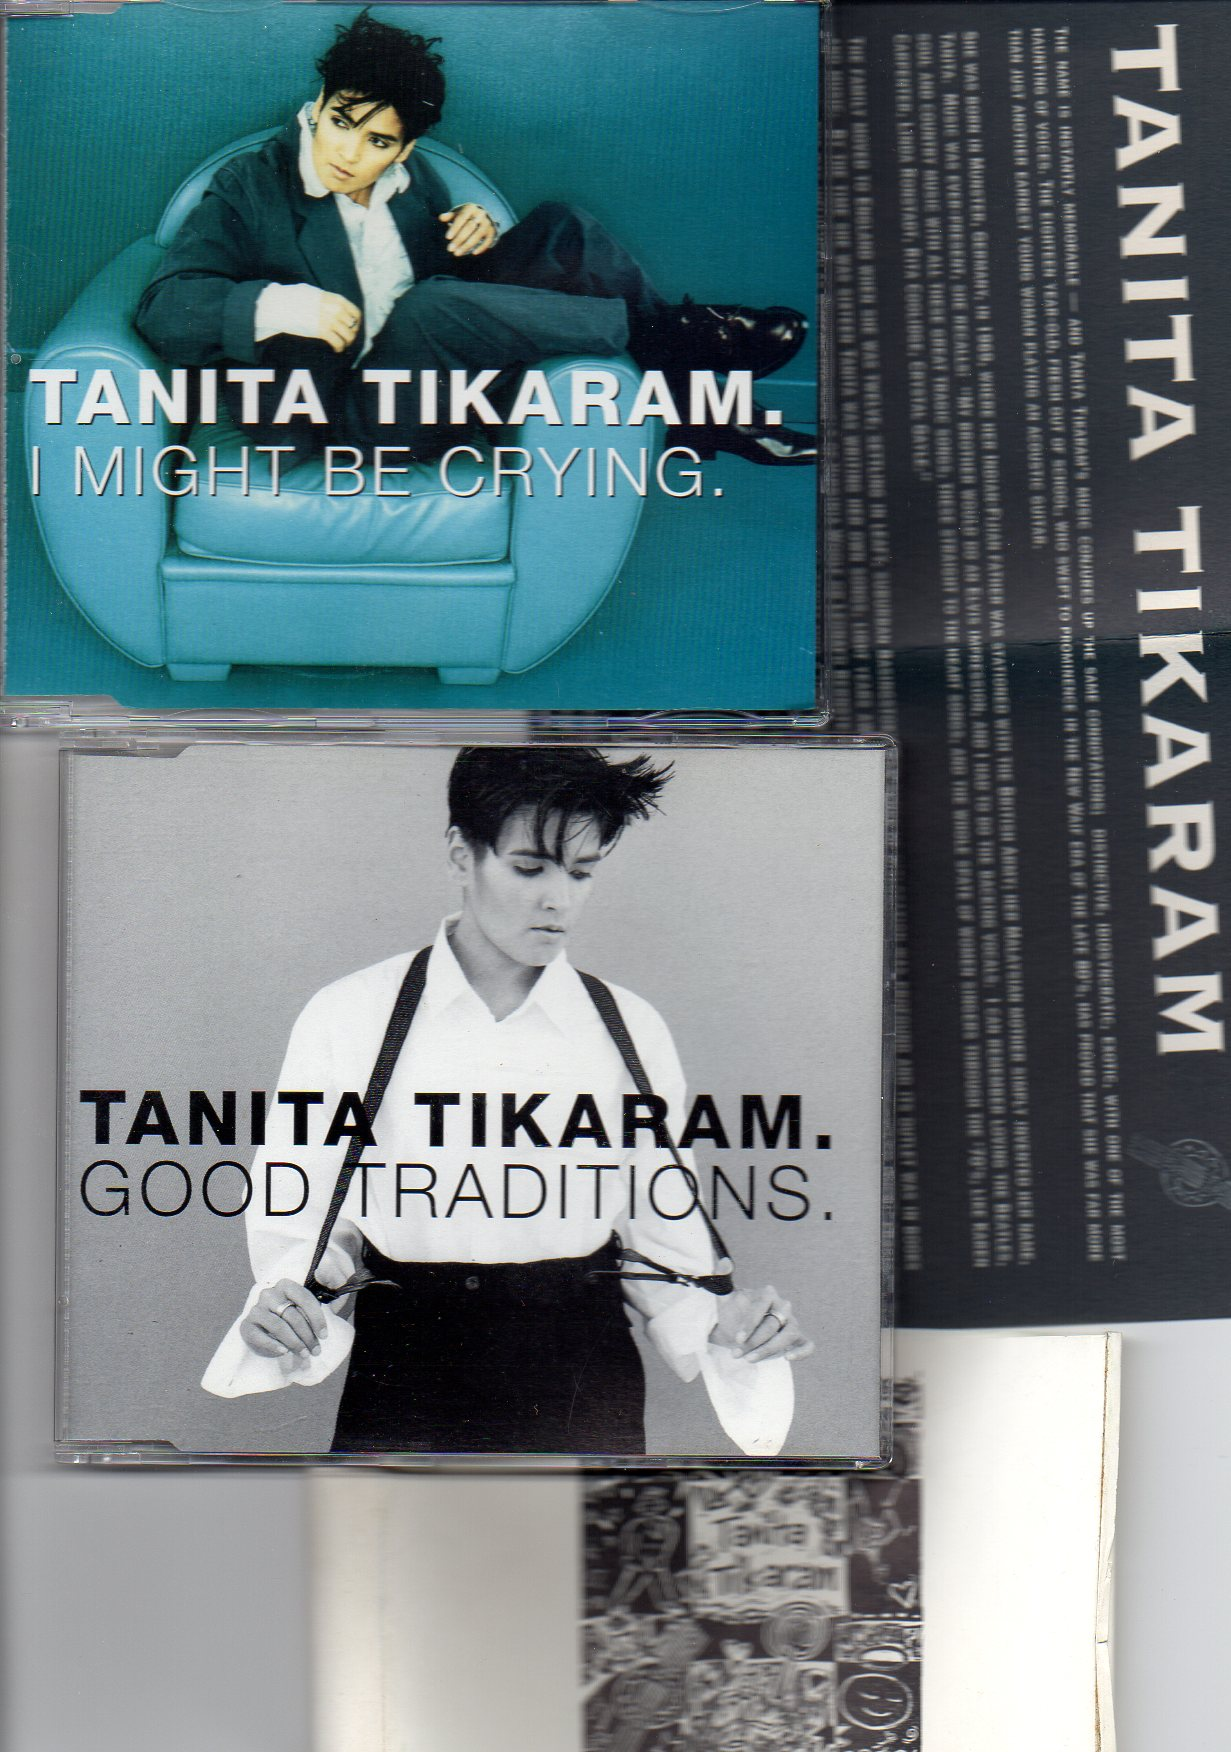 TANITA TIKARAM - Good traditions - I might be crying - set of 2 Promo singles inc leaflet - CD Maxi